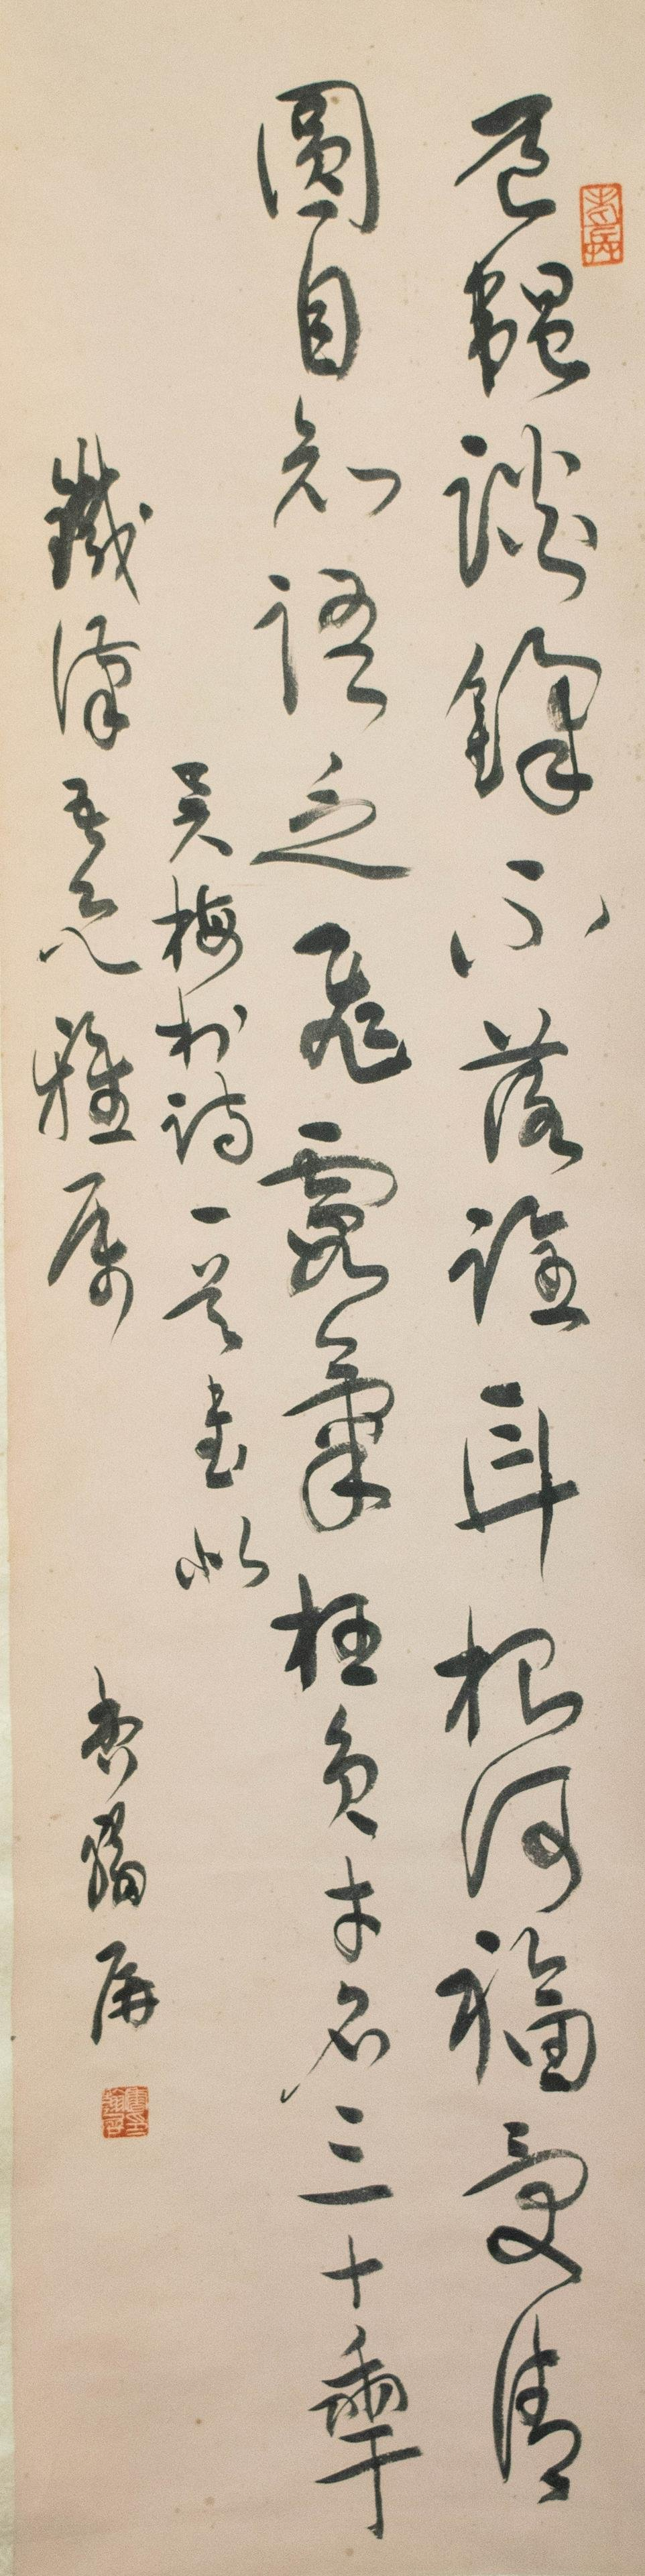 Calligraphy, Xiang Hanping Dedicated to Tiehan